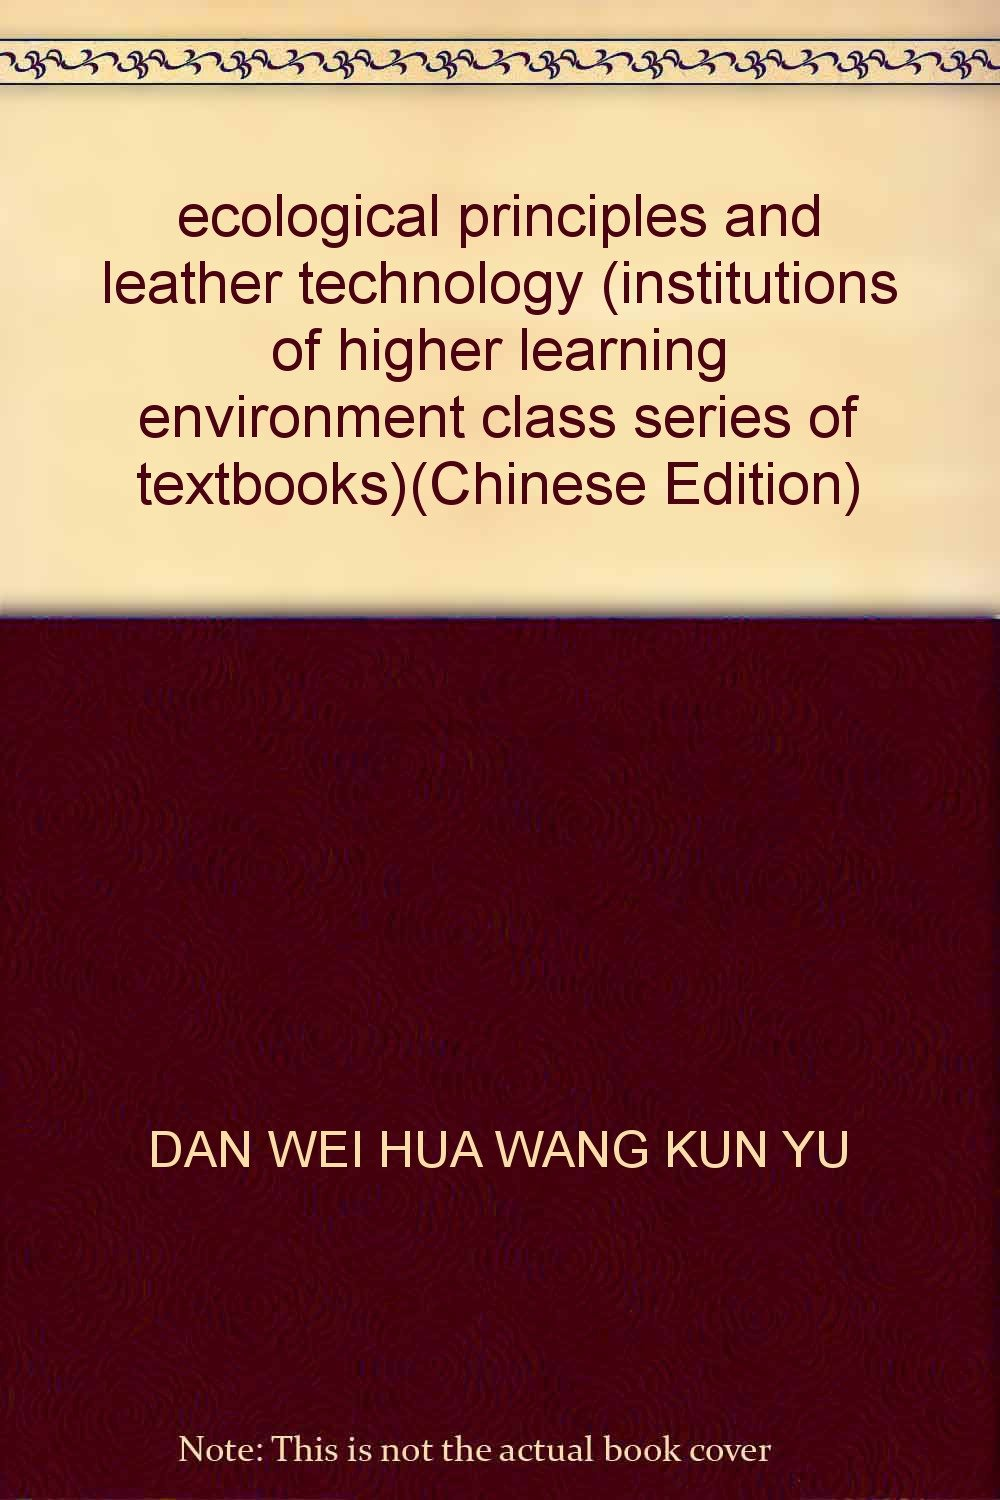 ecological principles and leather technology (institutions of higher learning environment class series of textbooks)(Chinese Edition) pdf